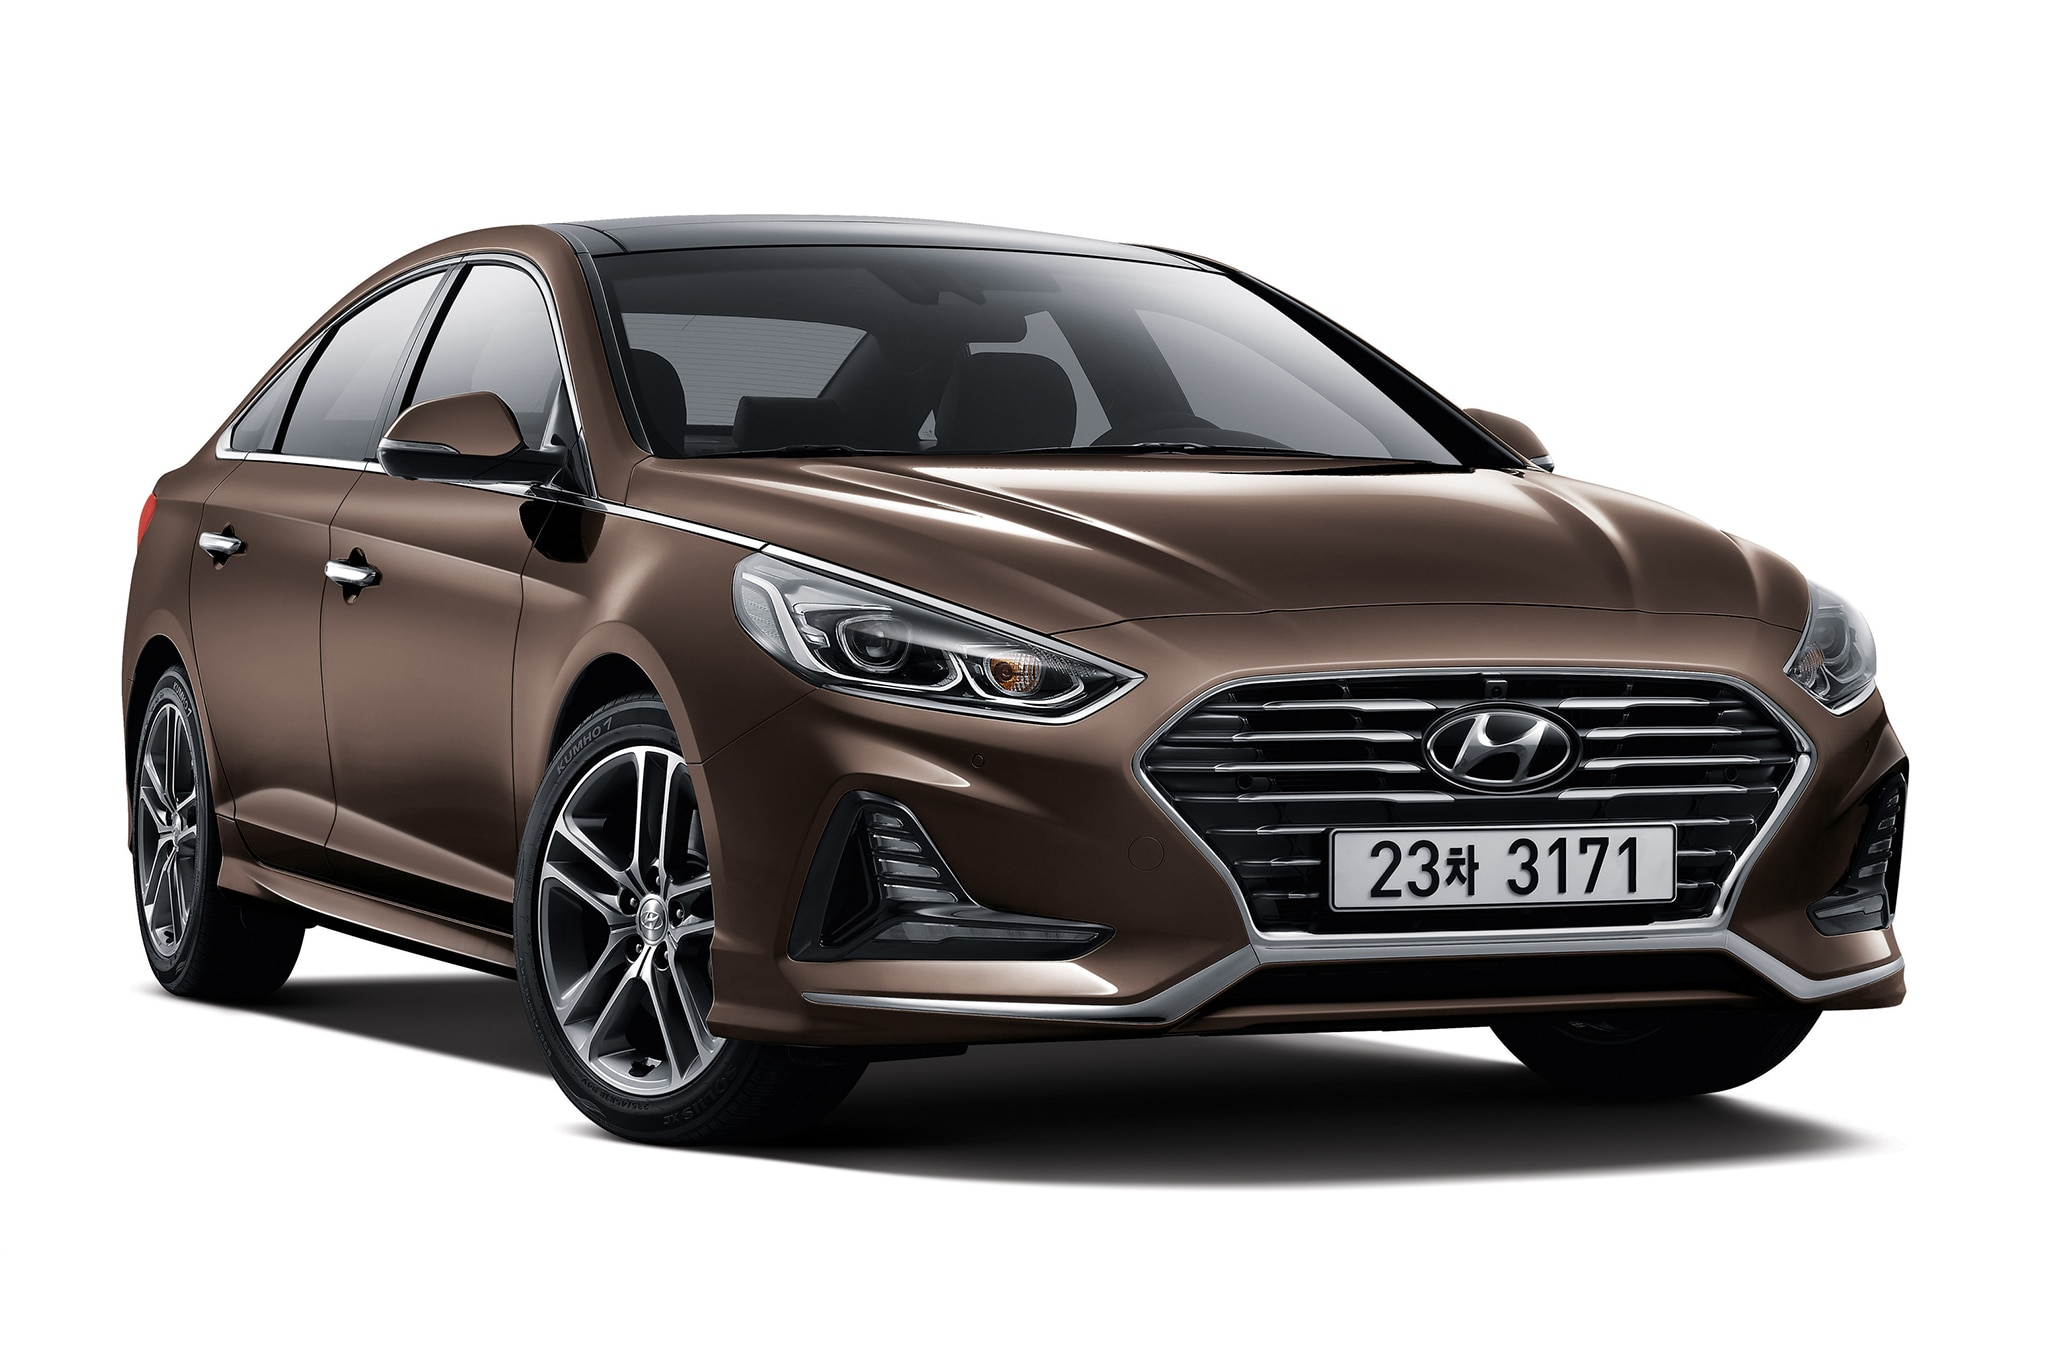 2018 Hyundai Sonata Korean spec front three quarter 02